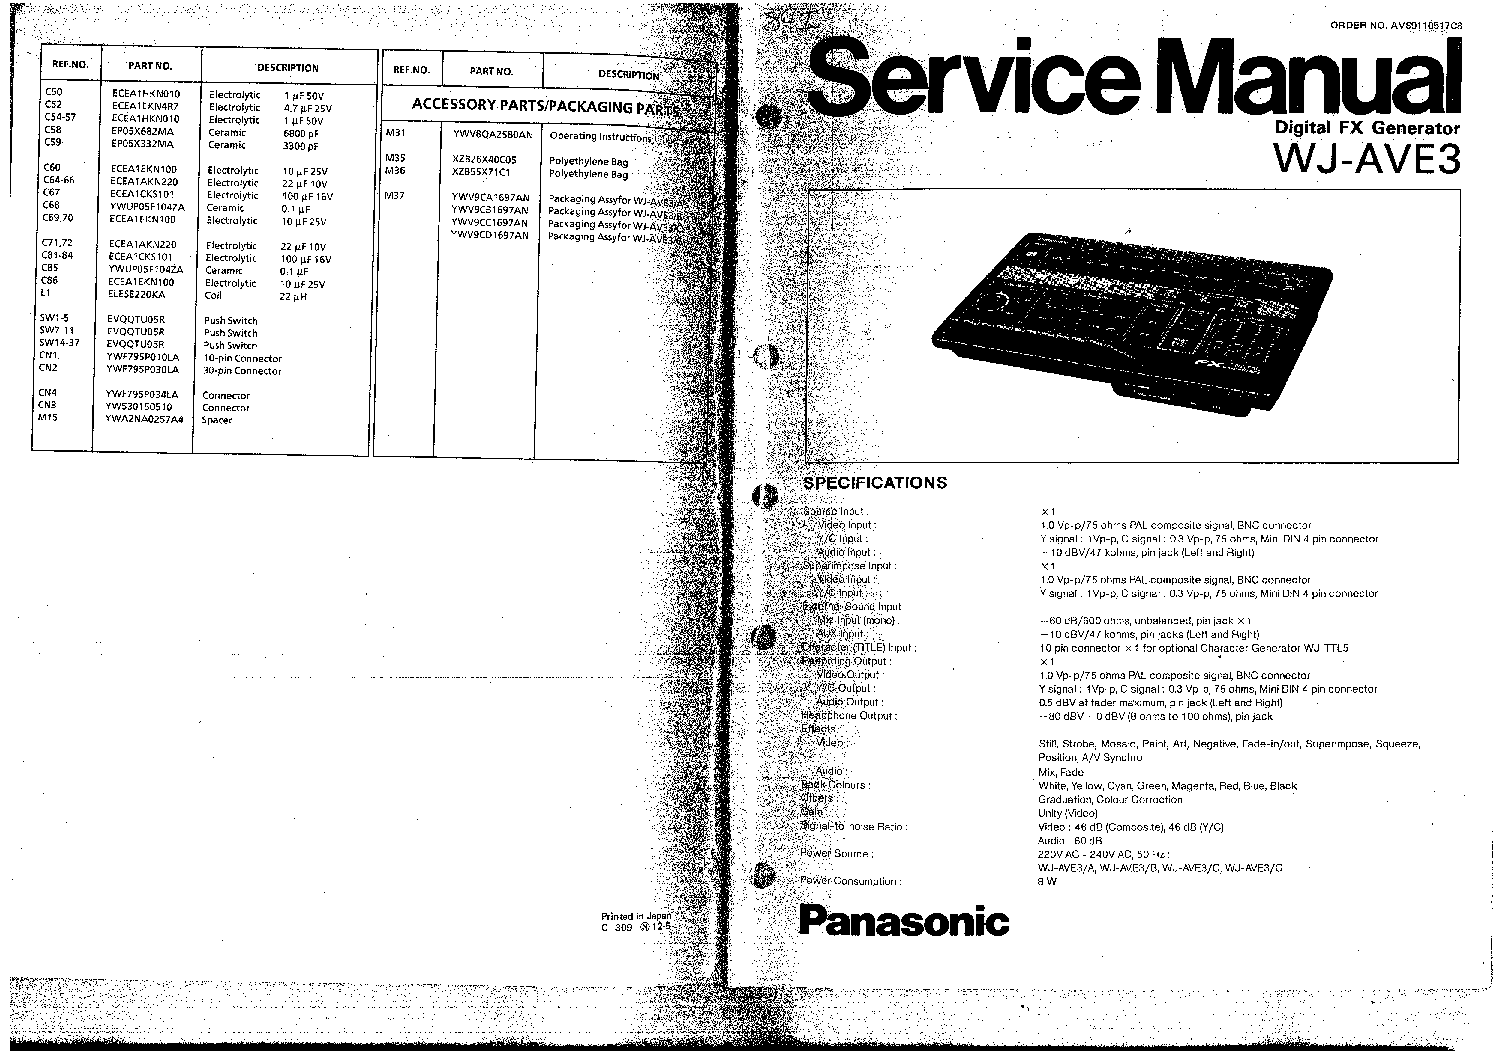 PANASONIC VIDEO MIXER WJ-AVE3 SM P1 Service Manual